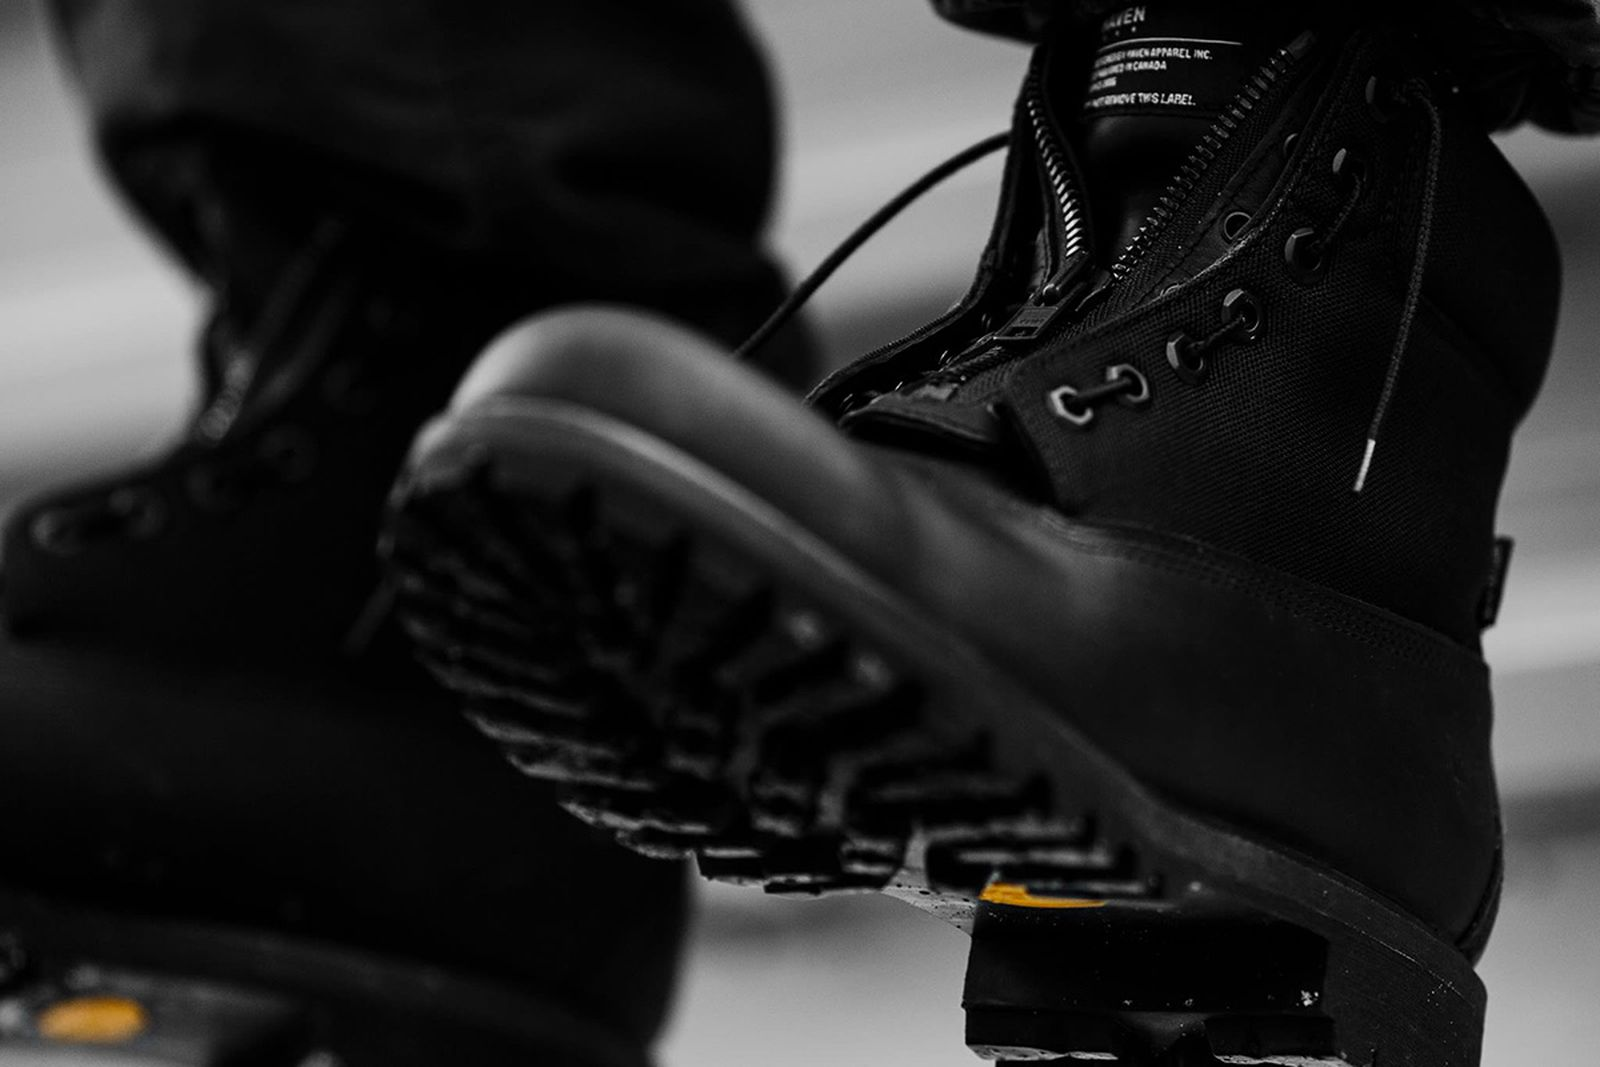 haven timberland gore tex 6 inch boots release date price gore-tex